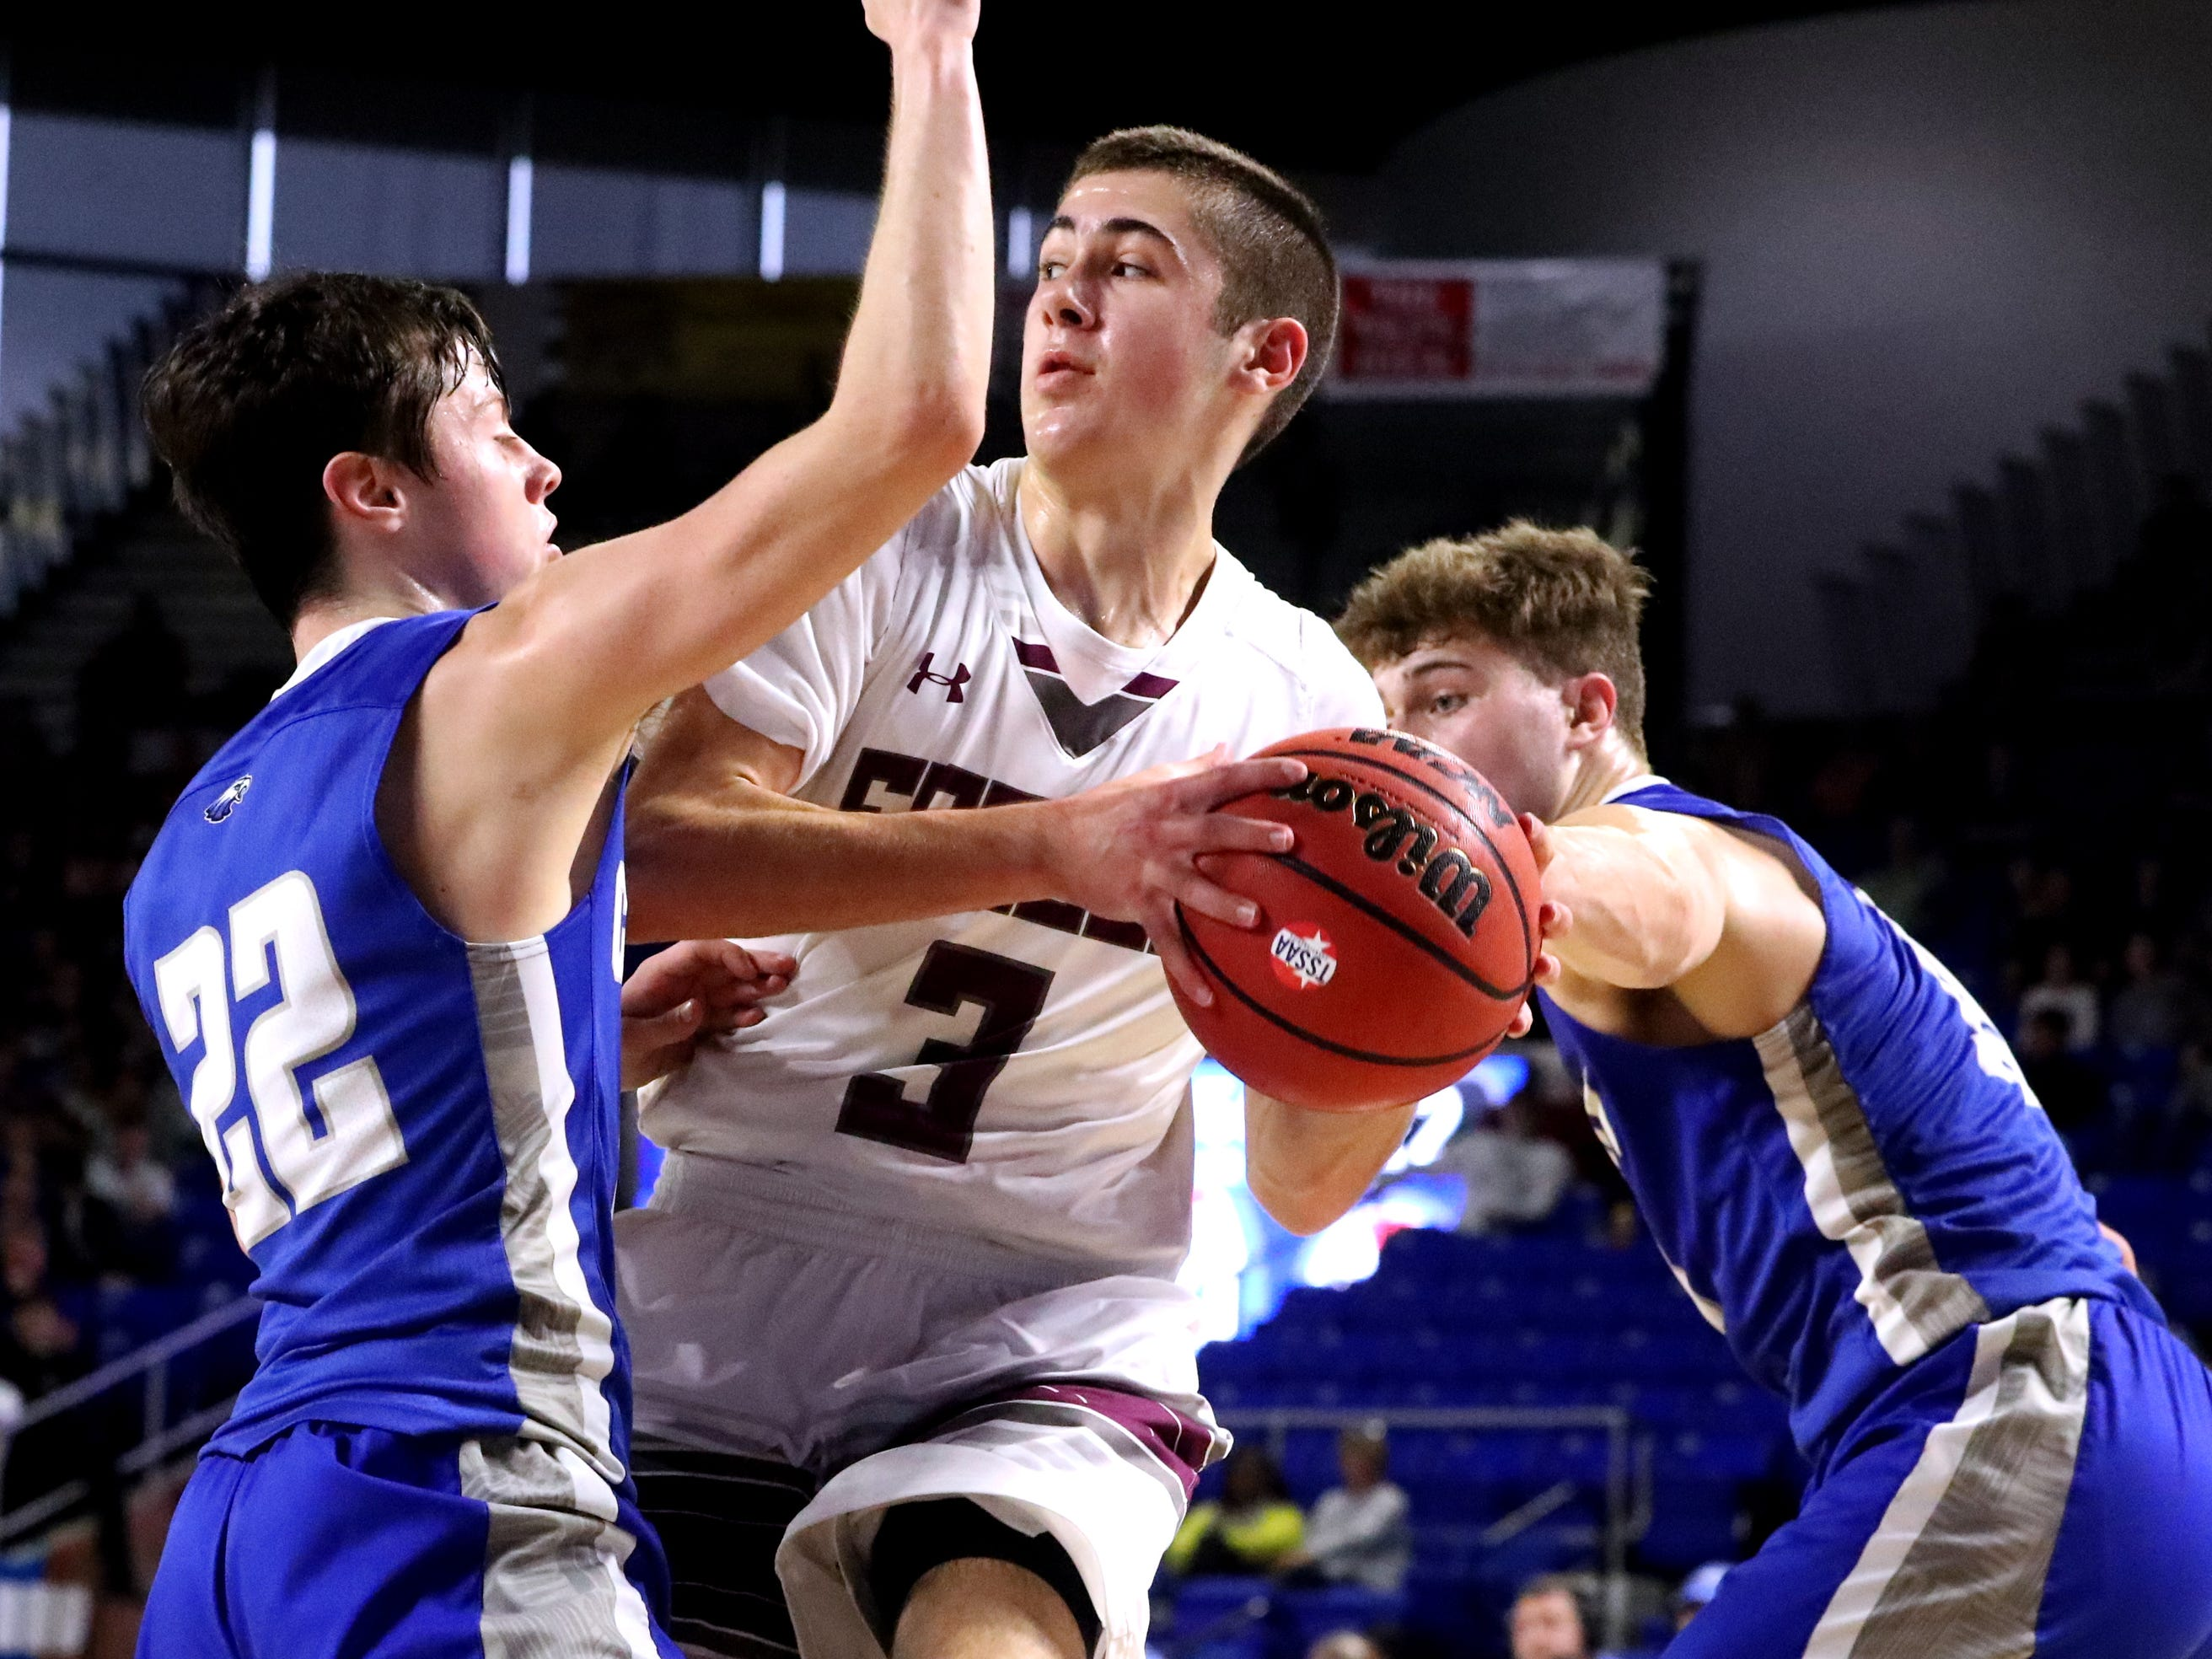 Eagleville's Ryley McClaran (3) looks to pass the ball between Cosby's Braden Shaffer (22) and Austin McKeehan (13) during the quarterfinal round of the TSSAA Class A Boys State Tournament, on Thursday, March 14, 2019, at Murphy Center in Murfreesboro, Tenn.